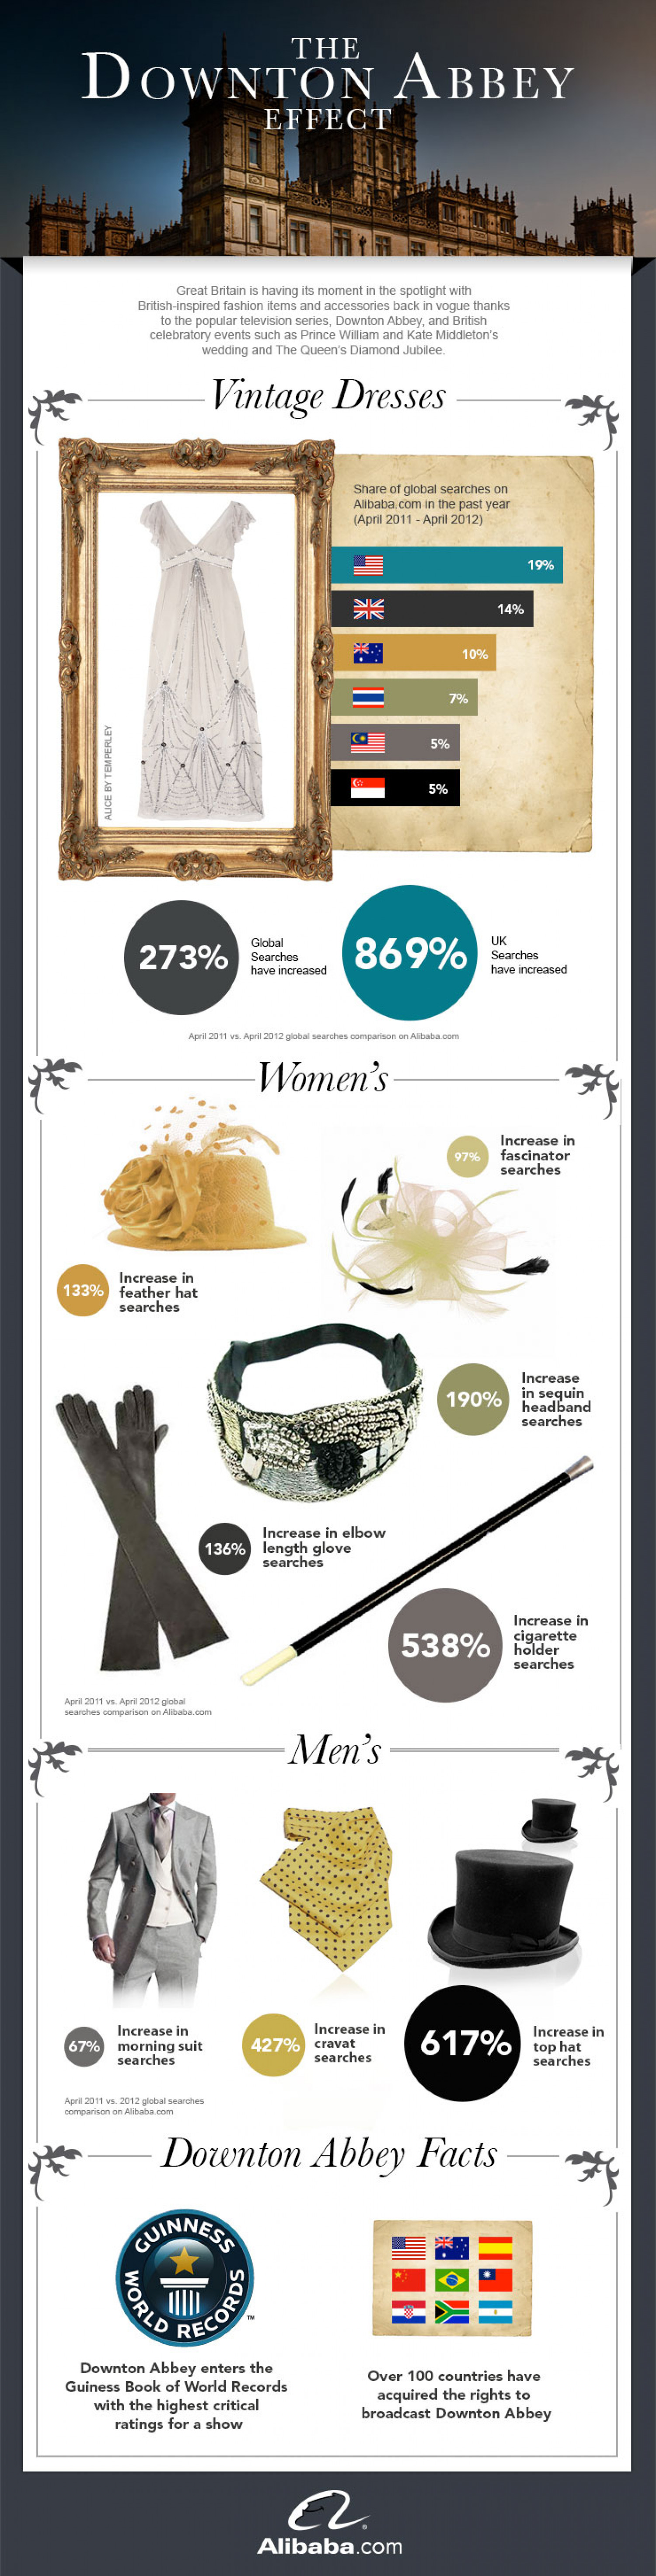 Downton Abbey sparks trend for vintage dresses Infographic